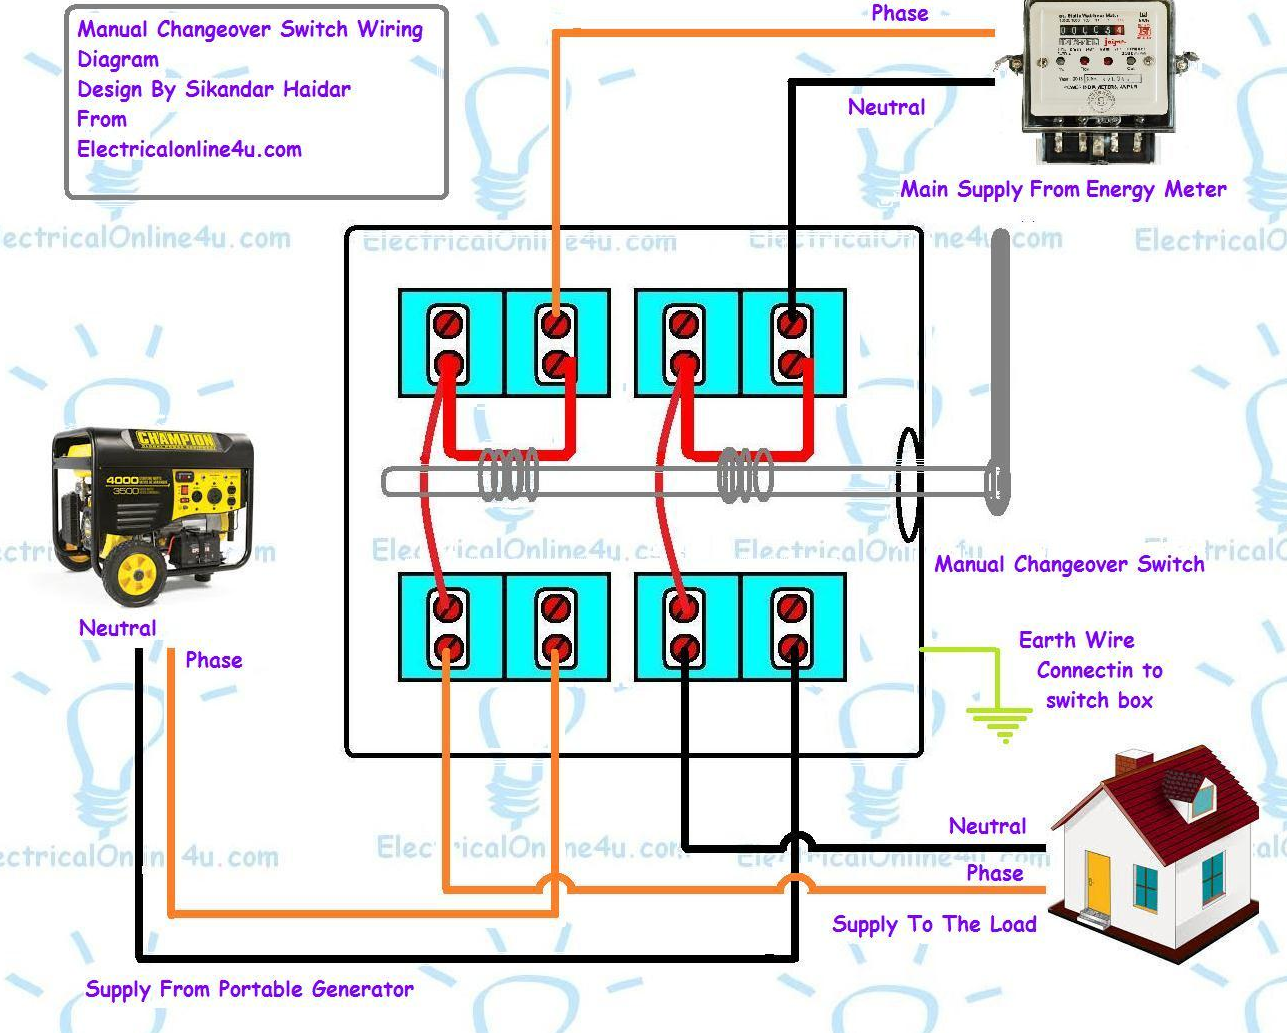 hight resolution of manual changeover switch wiring diagram for portable